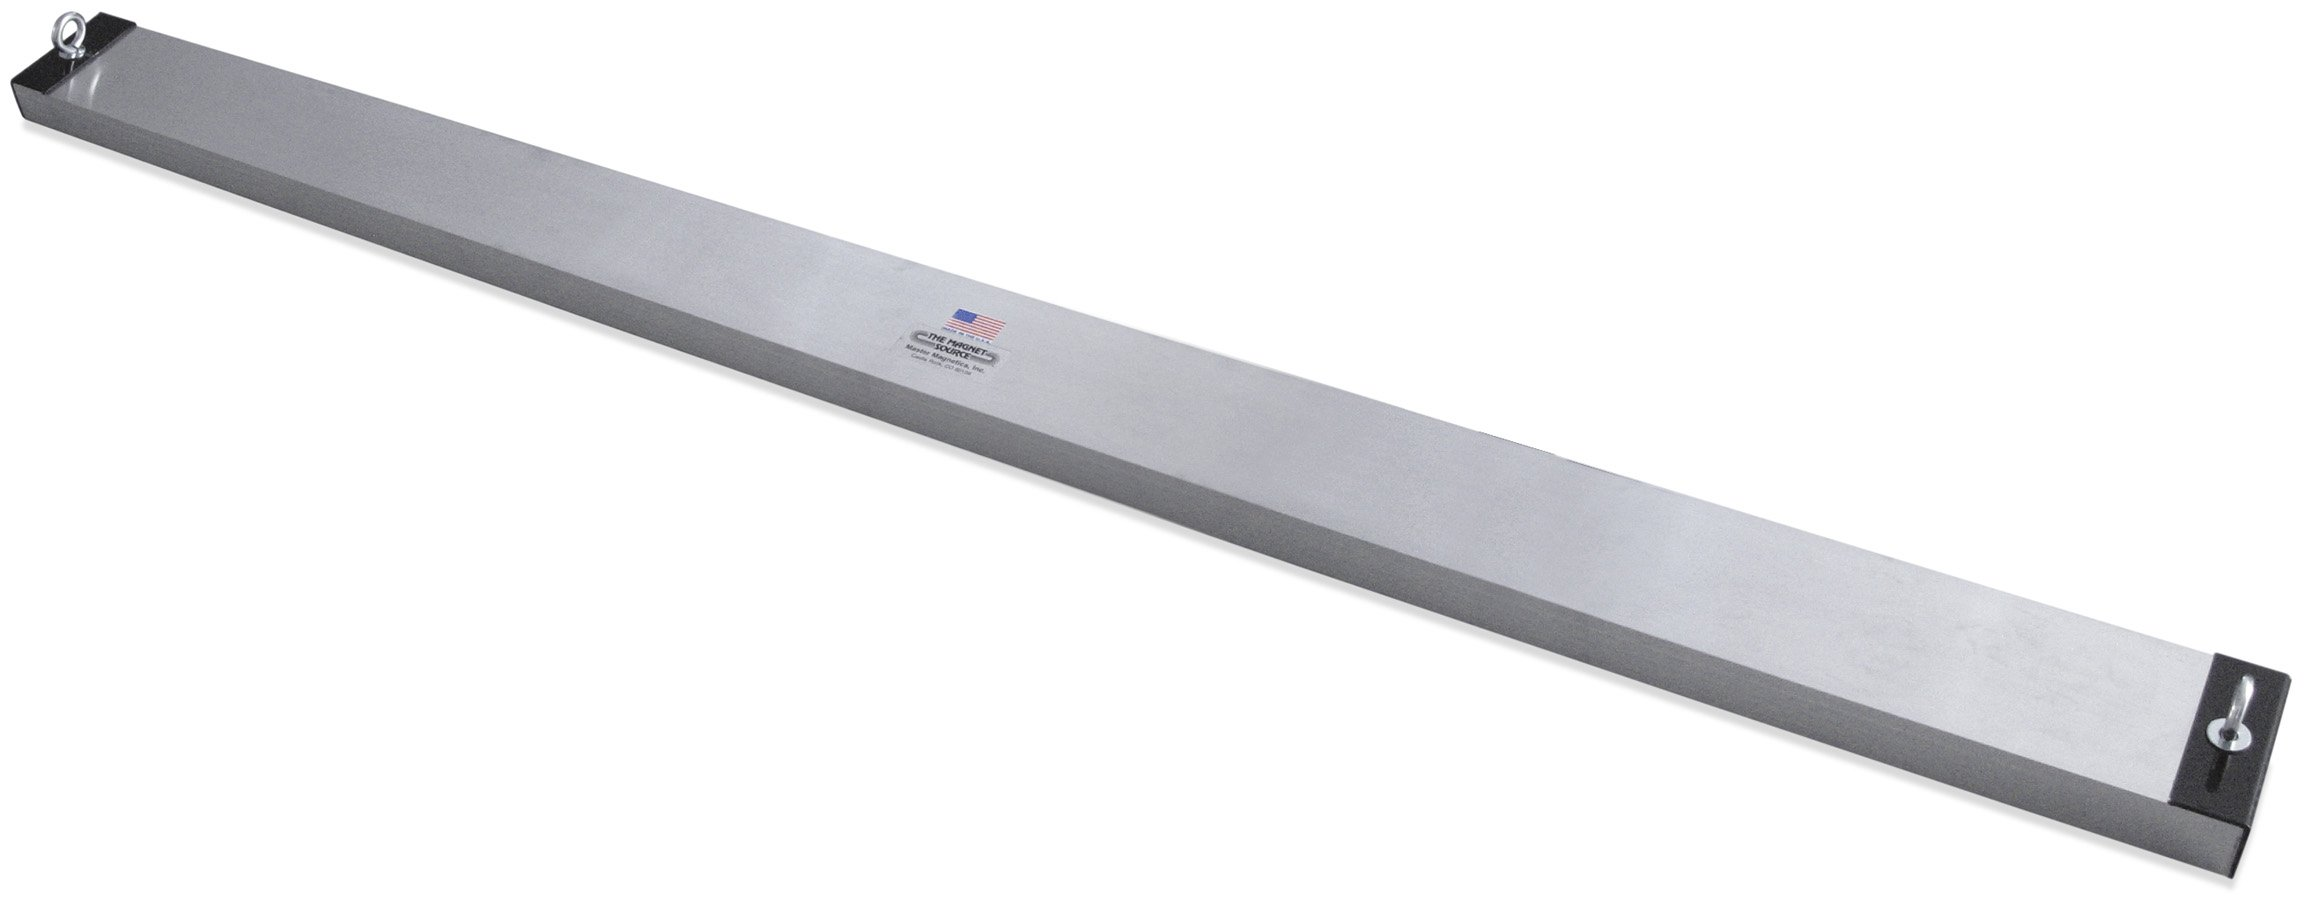 Magnetic Sweeper Hang-Type for Vehicle, 72'' Sweeping Width, 1 each by Master Magnetics